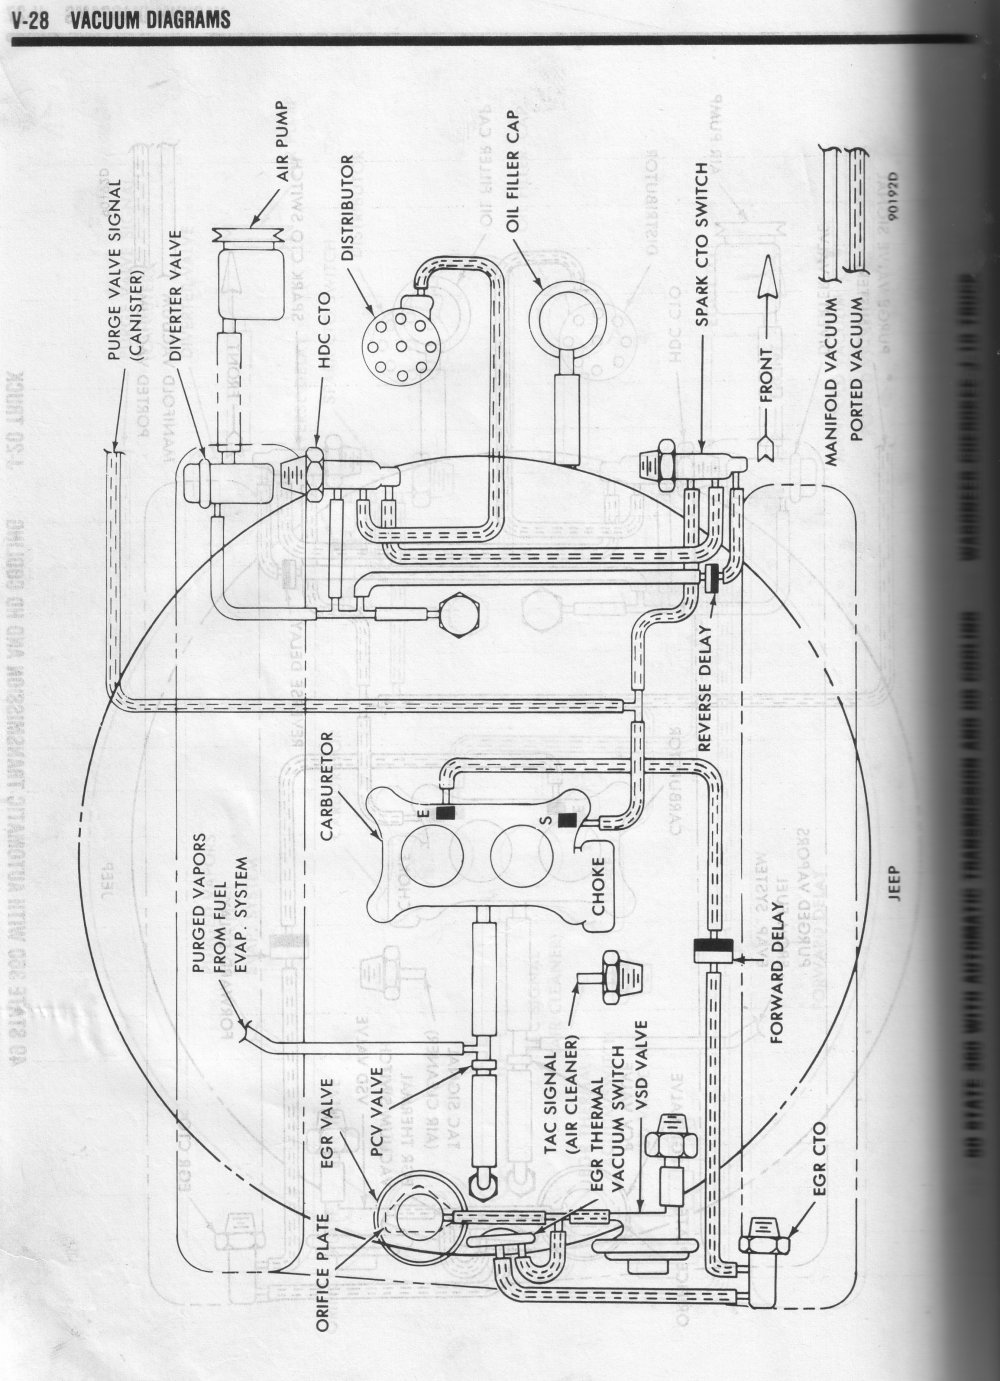 hight resolution of 60 state 360 cherokee wagoneer j10 automatic tansmission hd cooling 1980 vacuum diagrams